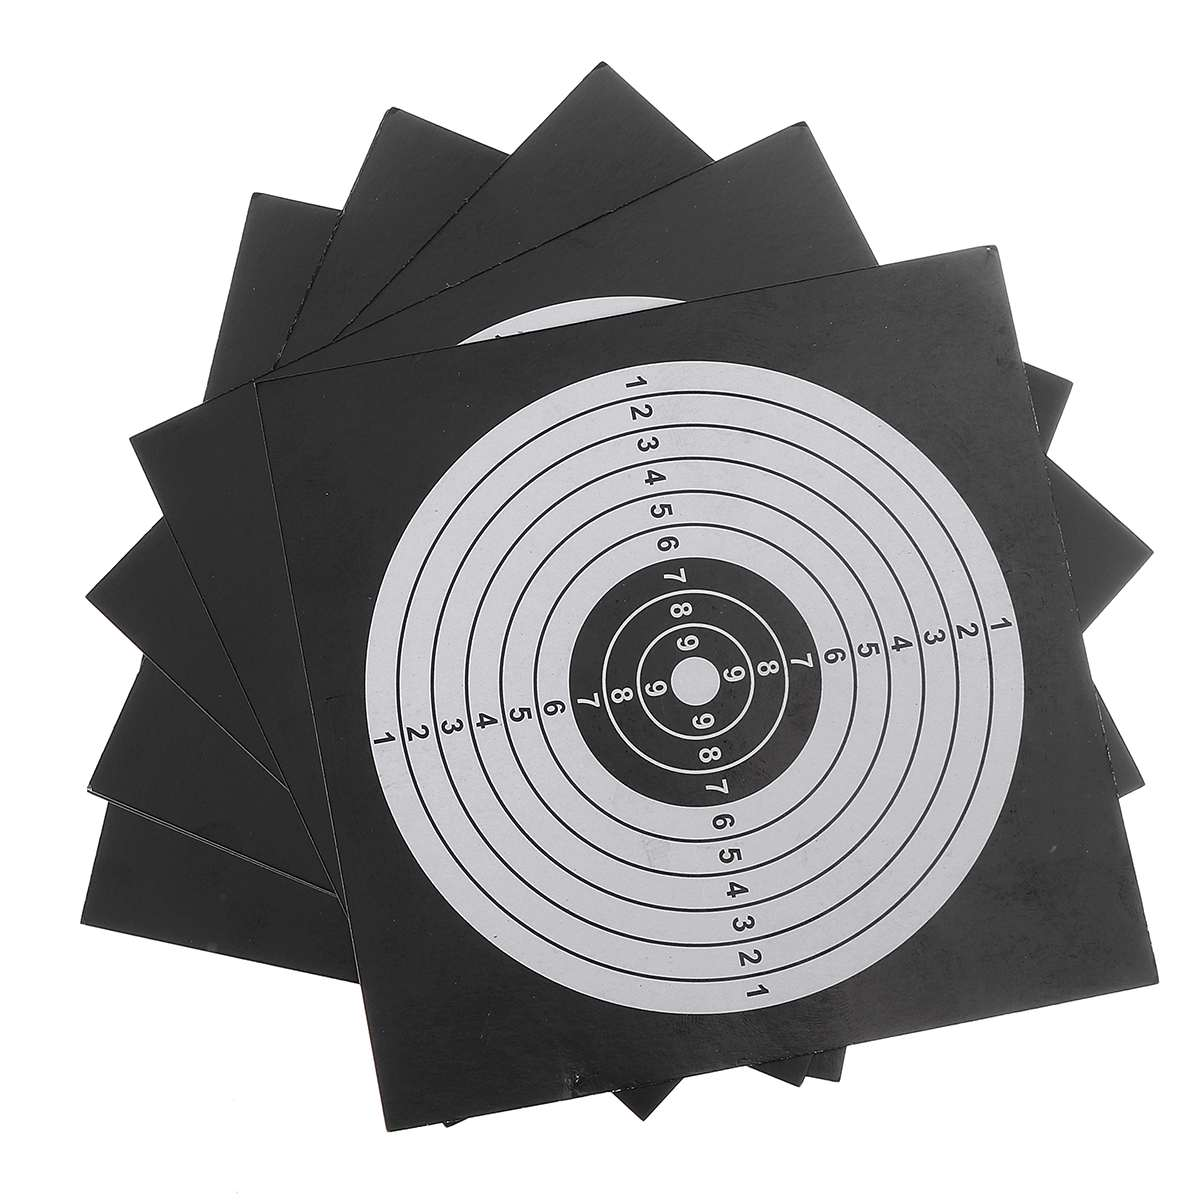 100pcs Shooting Target Paper Archery Targets Bow Arrow Gauge Tools Shooting Training Practice Paintball Accessories 14x14cm